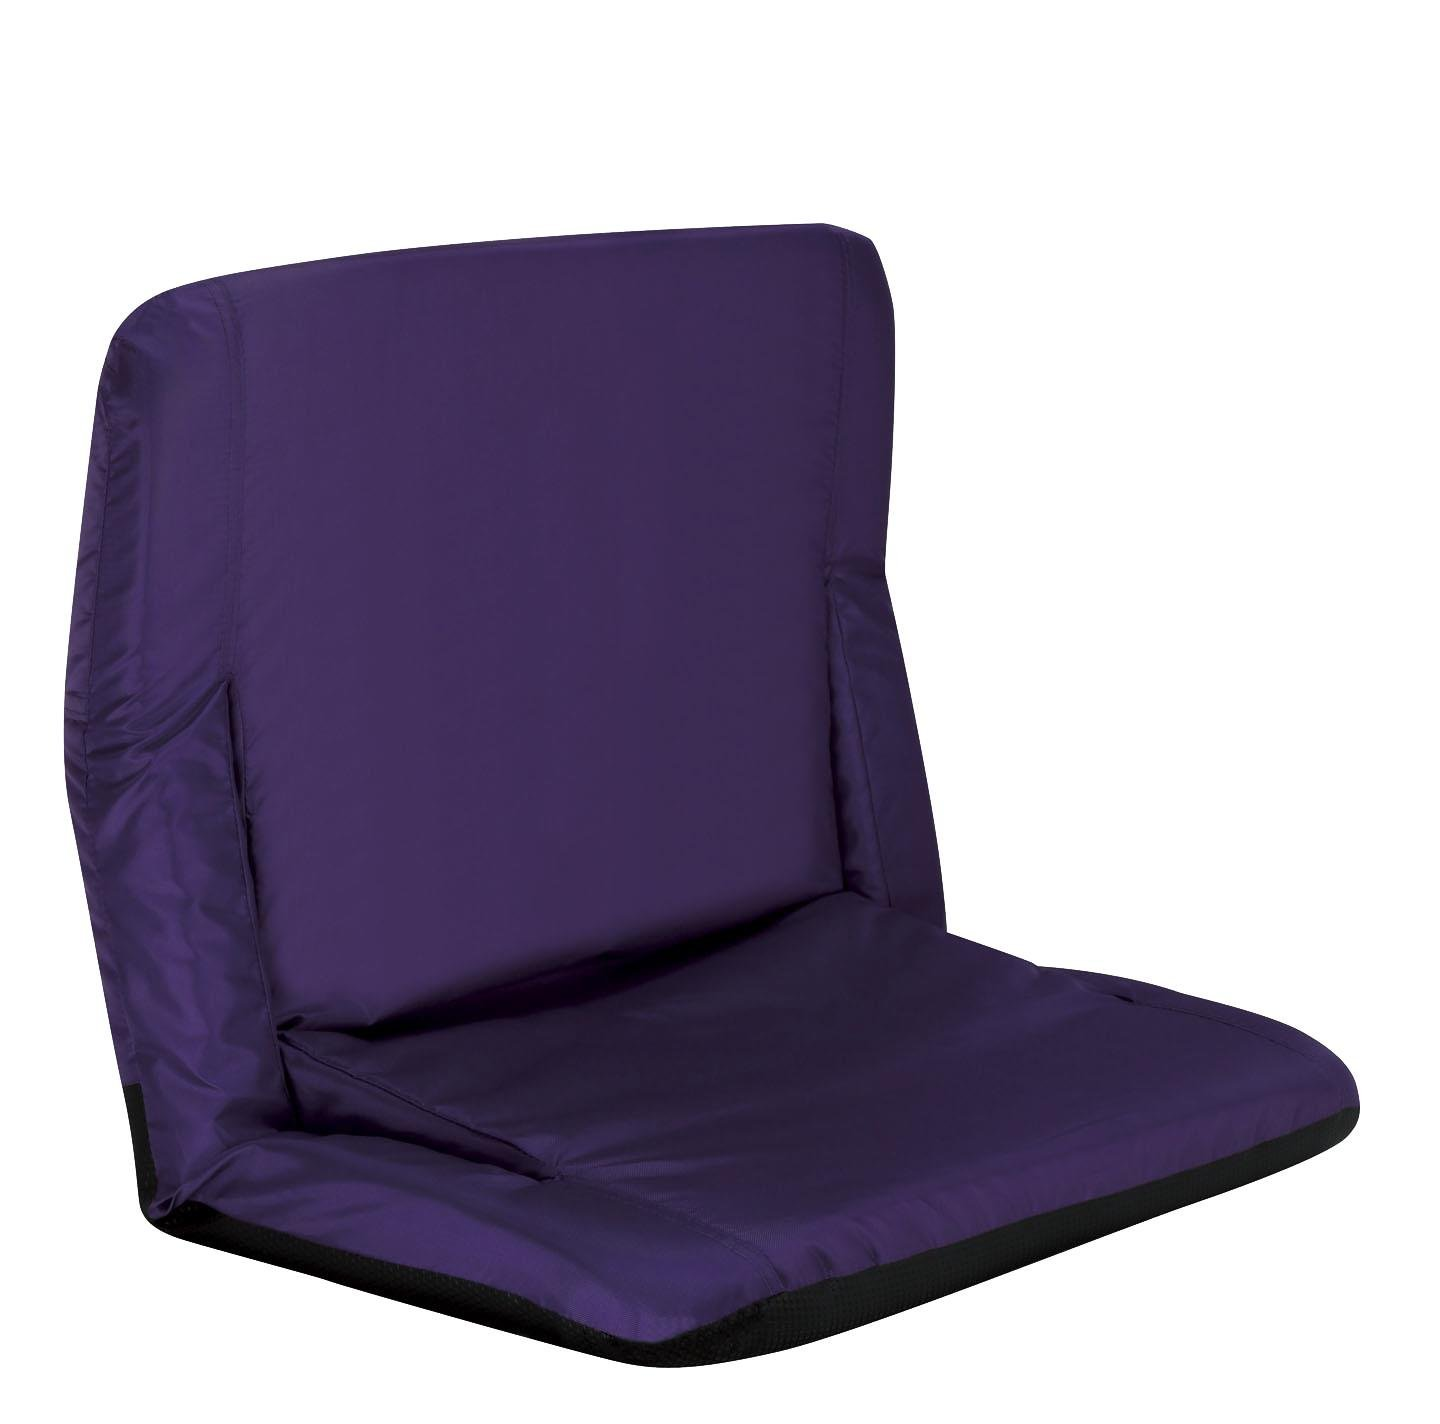 Naomi Home Reclining Stadium Chair  sc 1 st  TopProducts.com & Best Stadium Seat Reviews of 2017 at TopProducts.com islam-shia.org